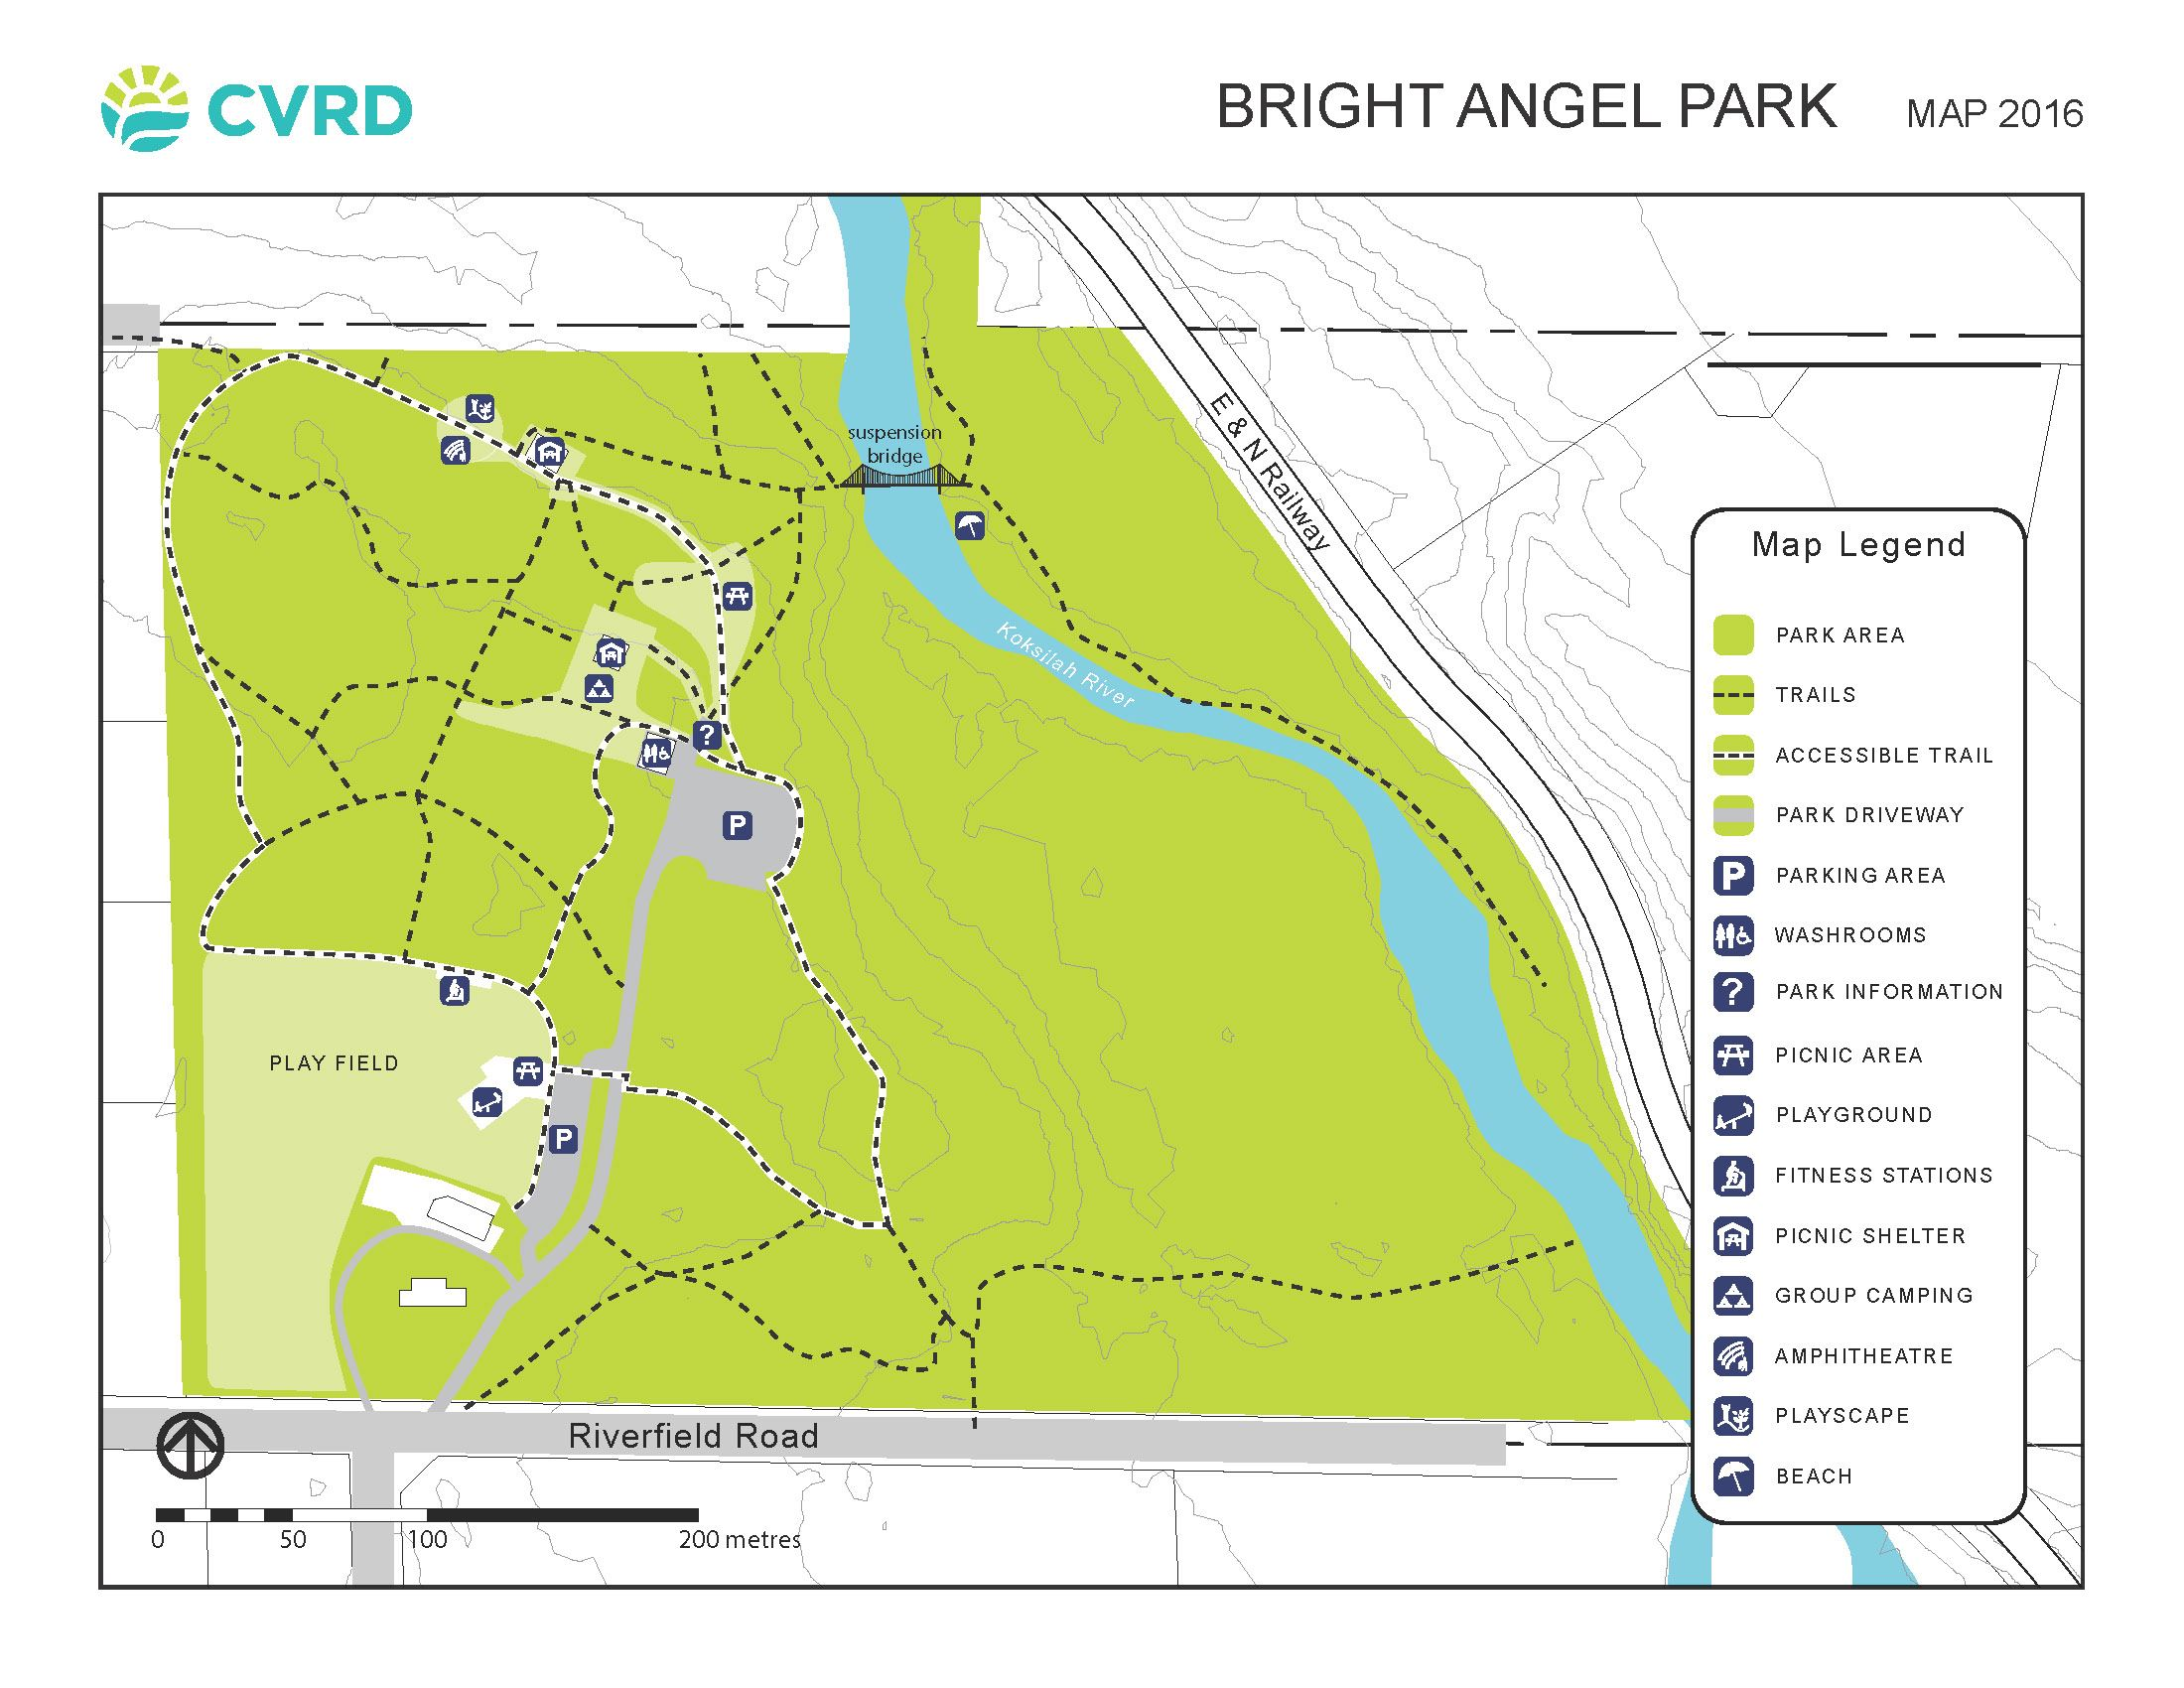 Bright Angel Park Map 2016